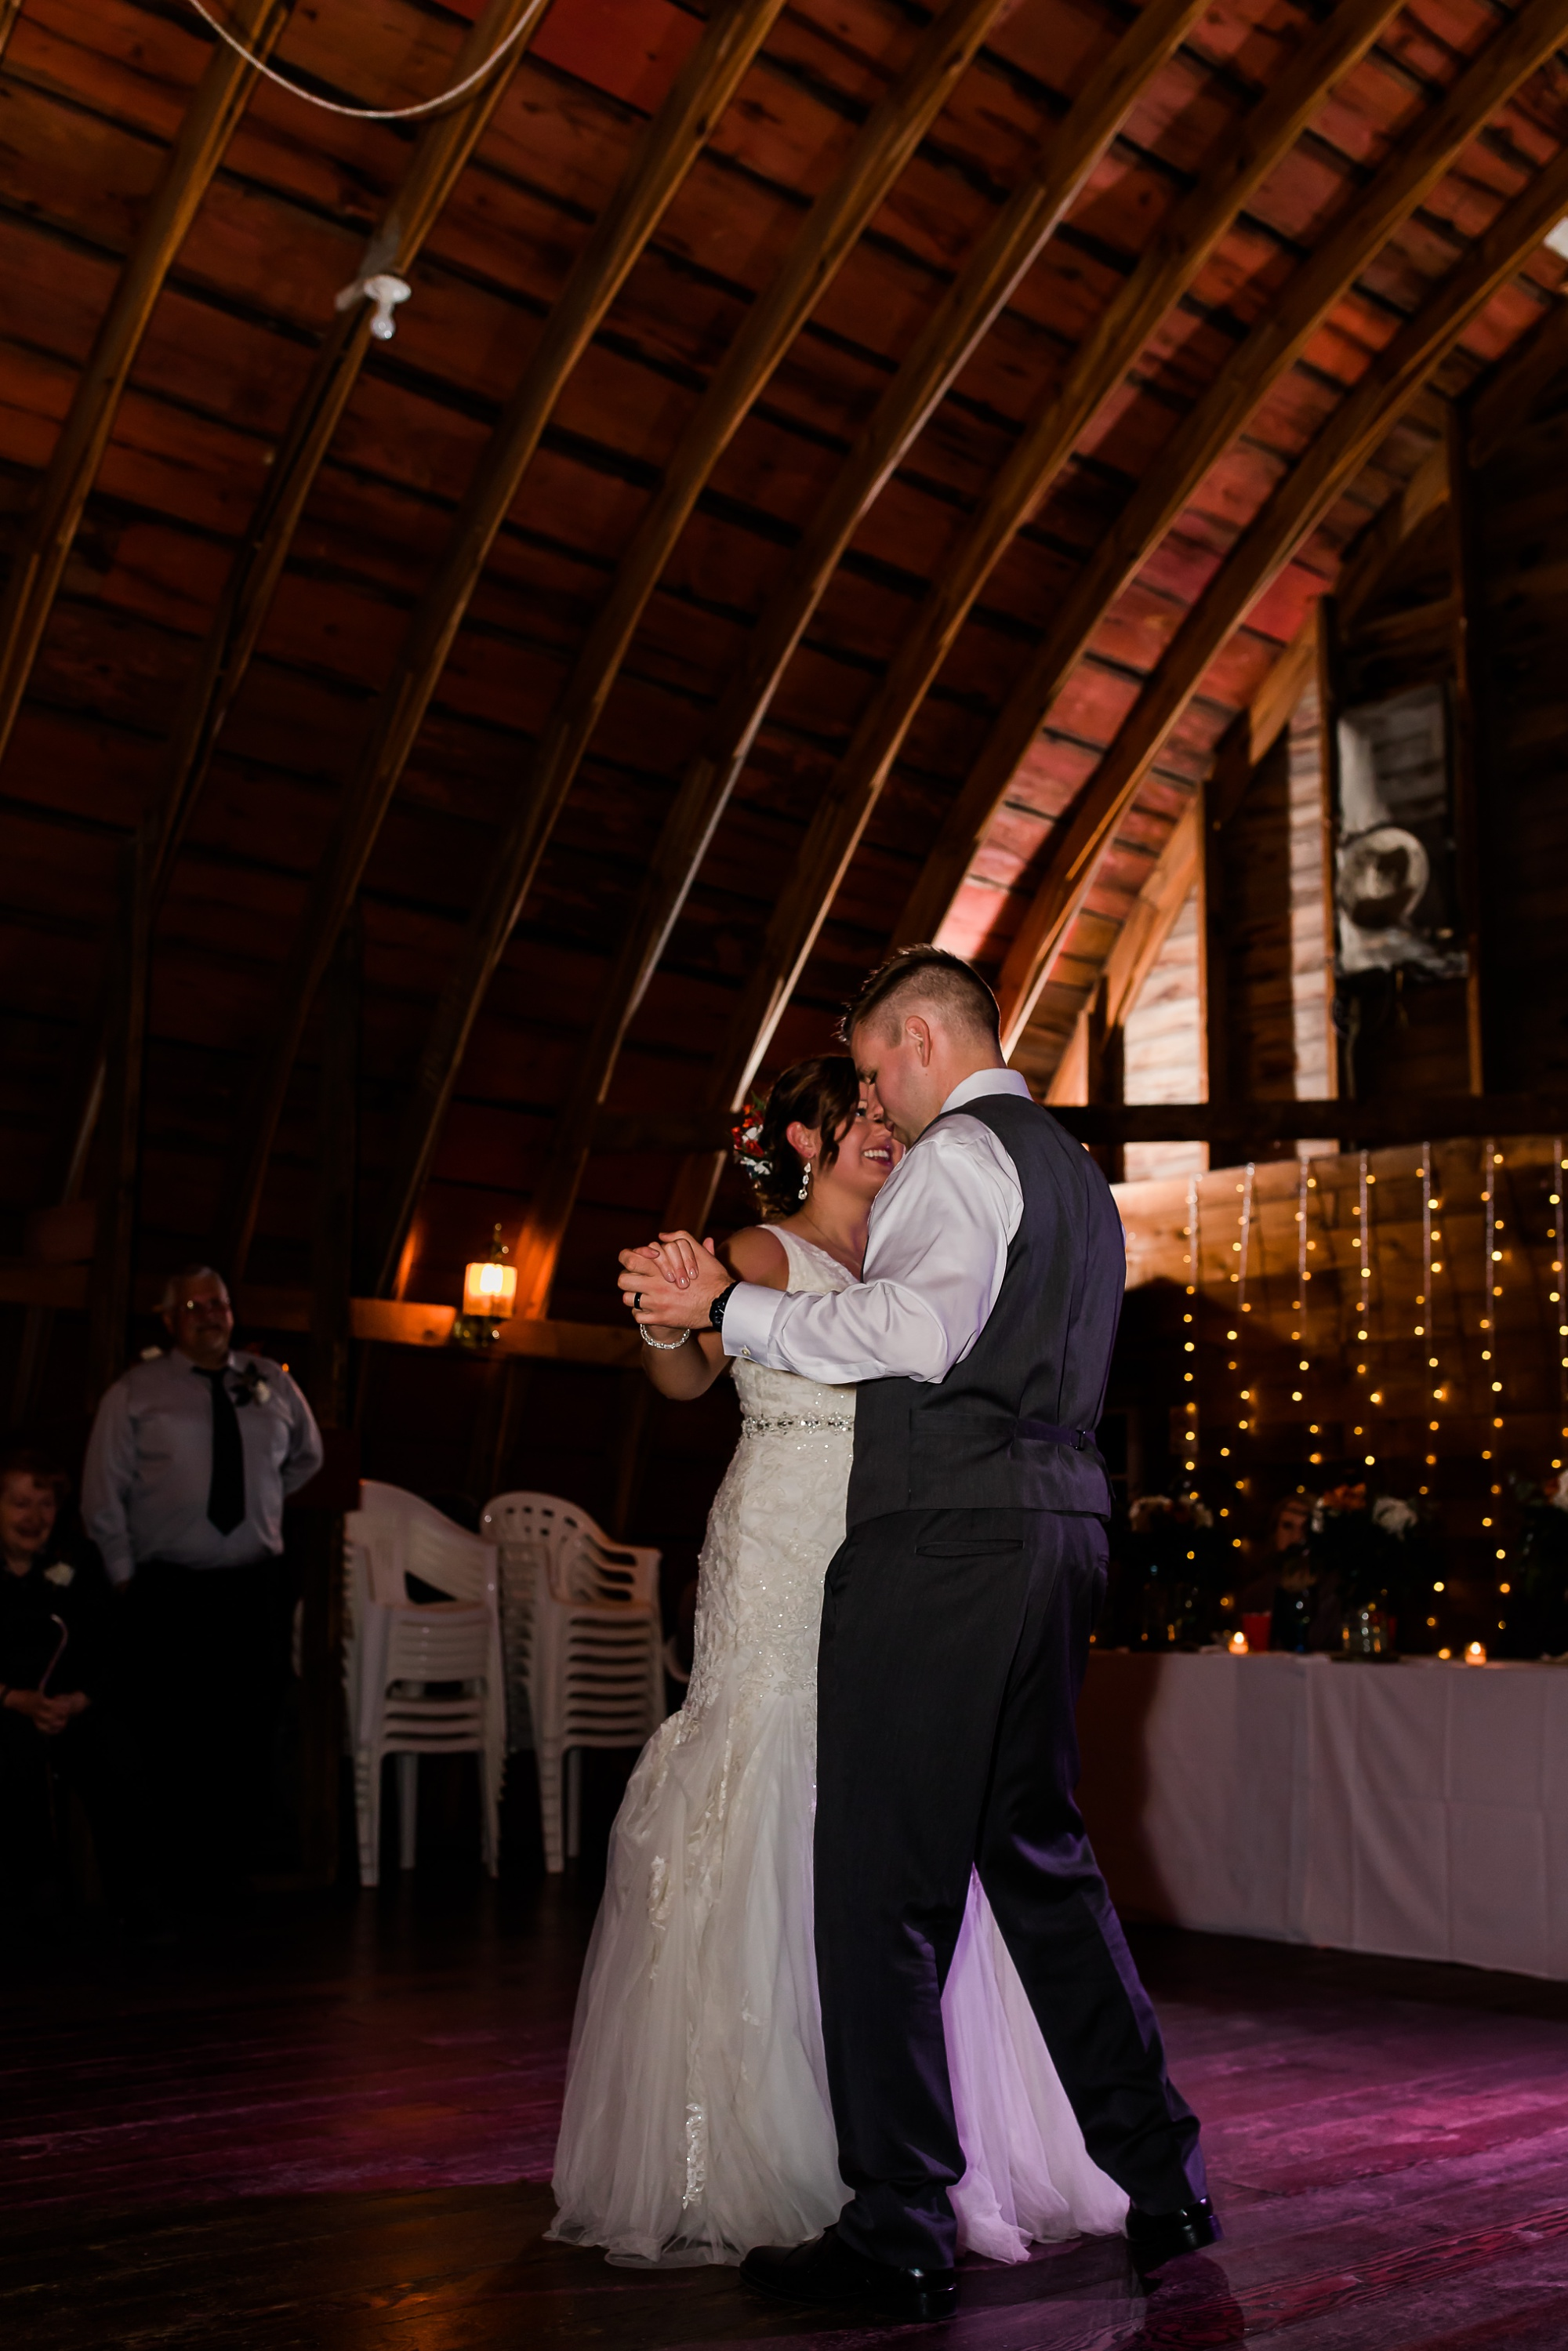 Amber Langerud Photography_Moohread, Outdoor, Barn Wedding at A Friends House_7152.jpg